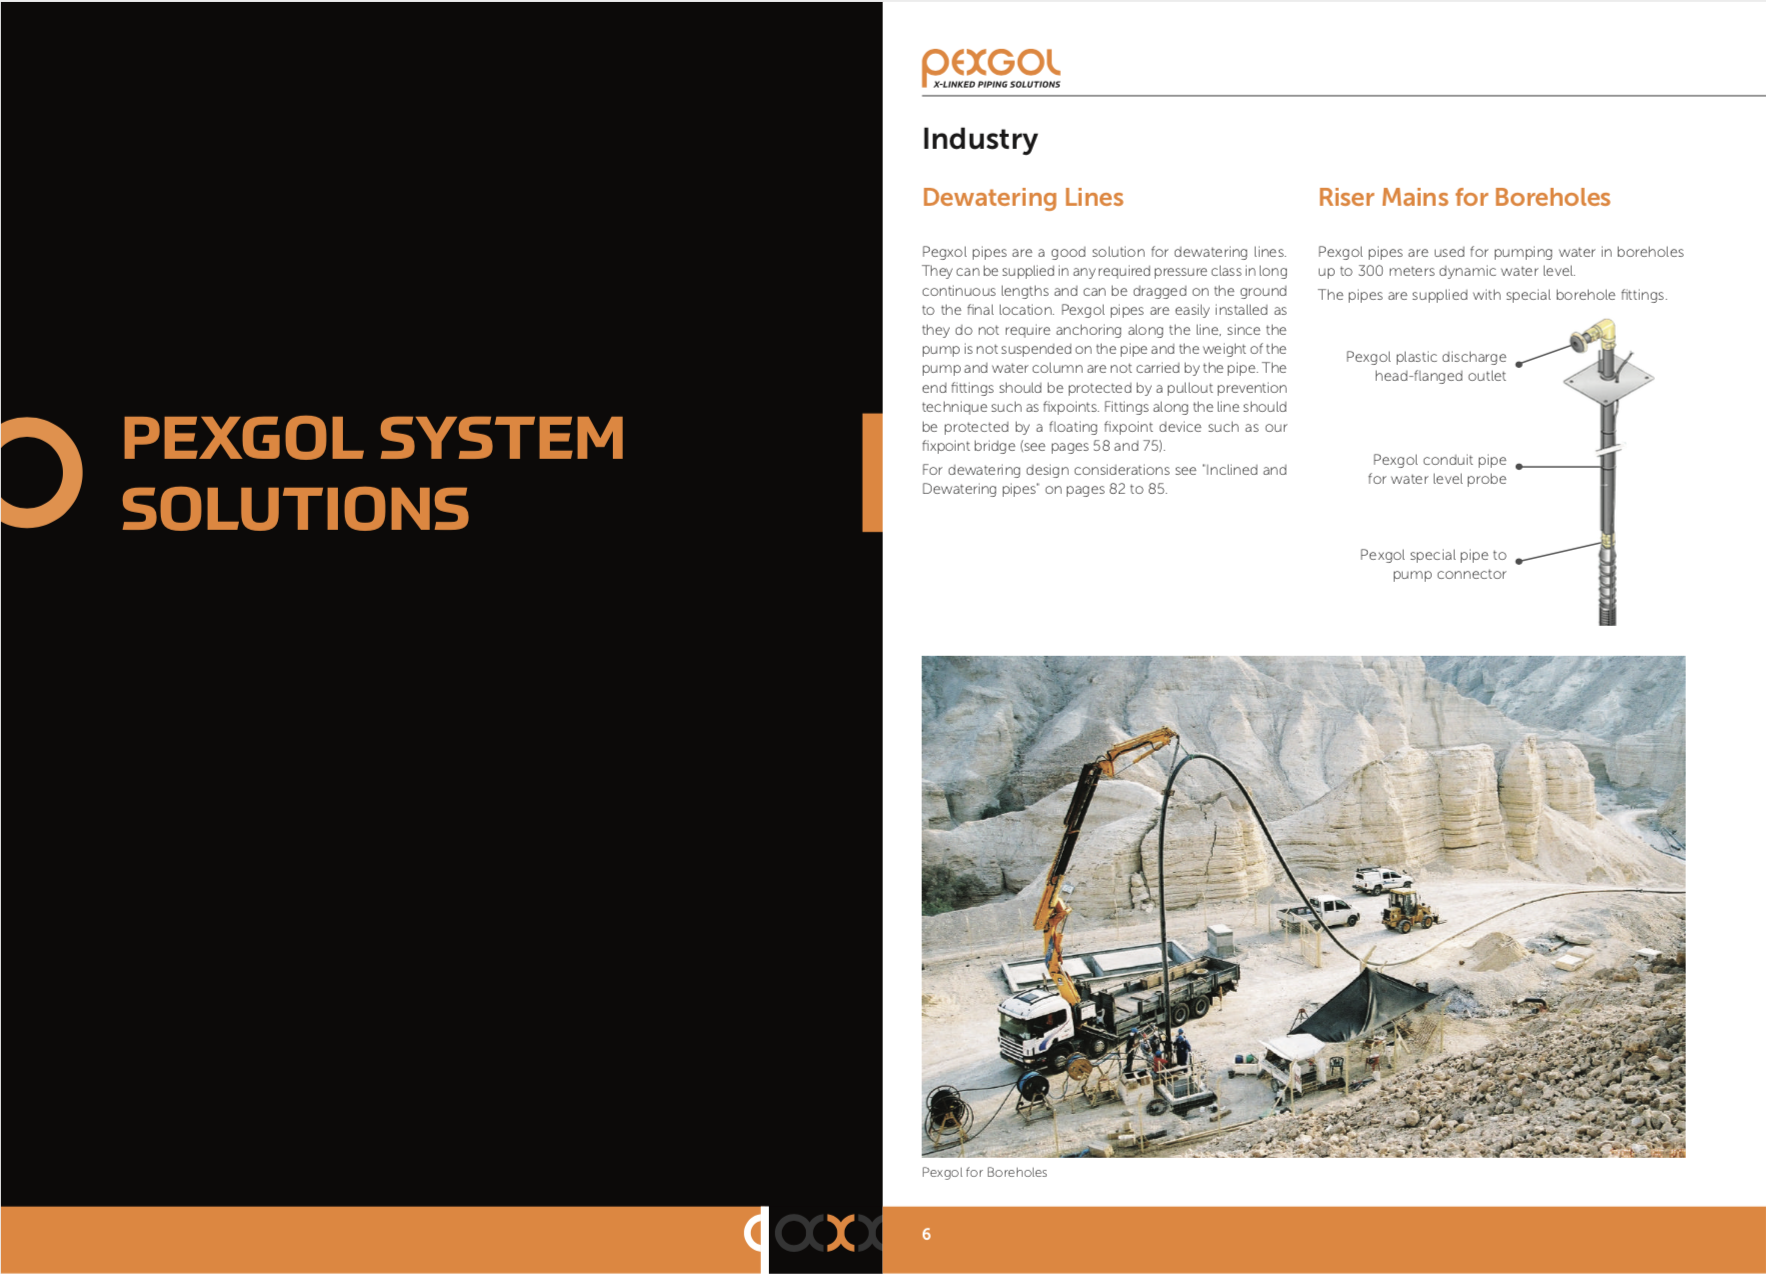 Inside of Engineering Guide, Pexgol System Solutions